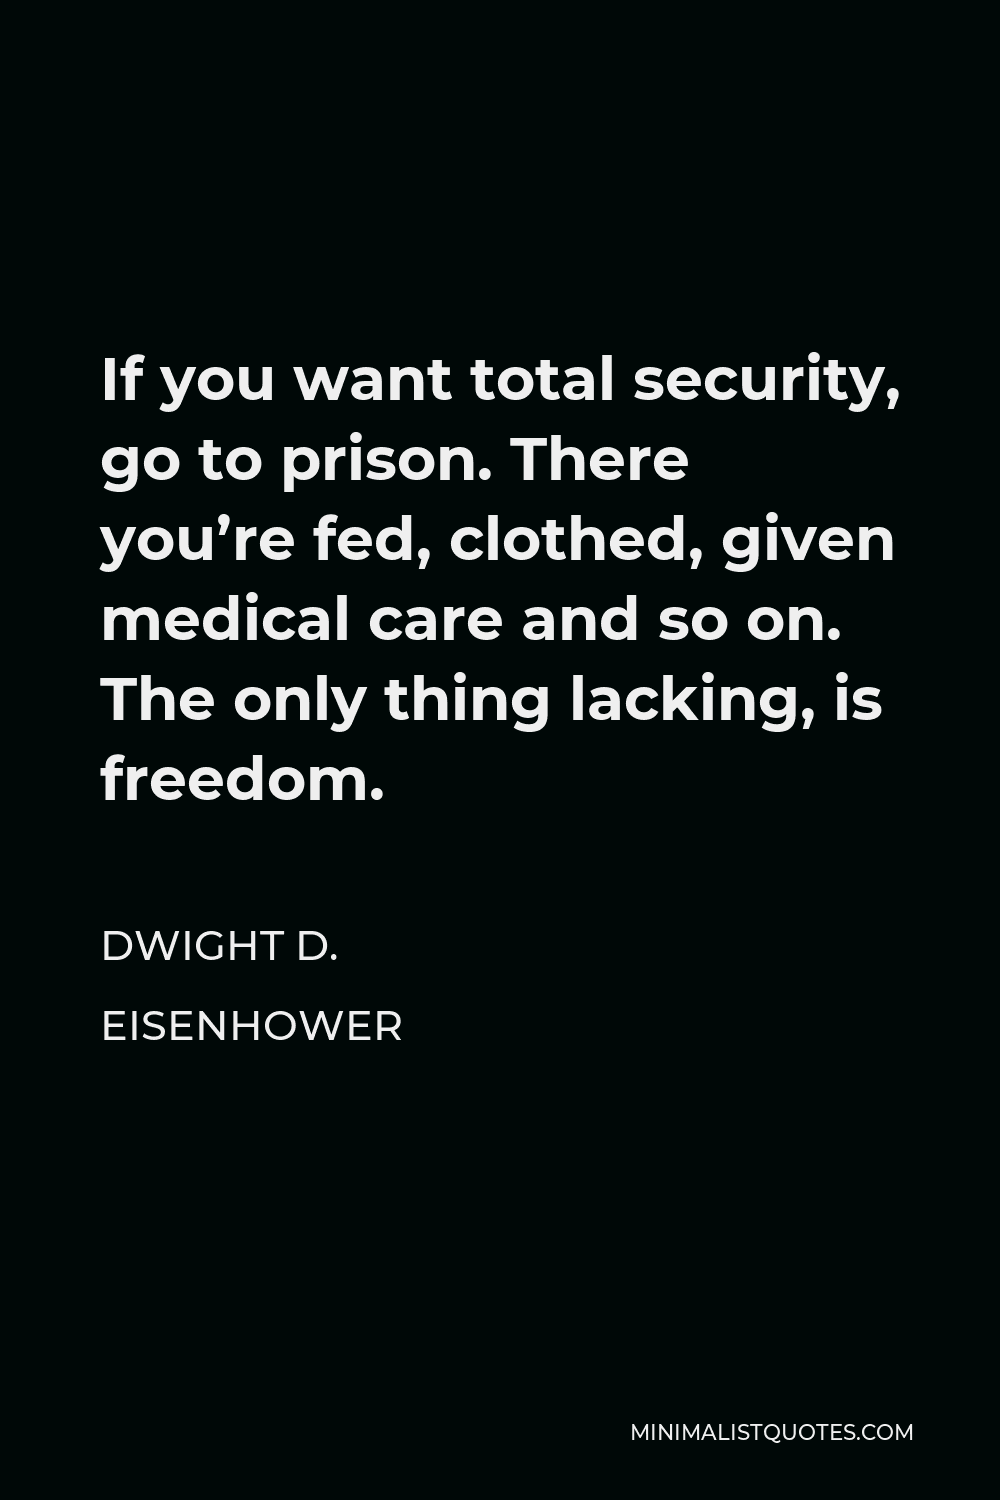 Dwight D. Eisenhower Quote - If you want total security, go to prison. There you're fed, clothed, given medical care and so on. The only thing lacking, is freedom.